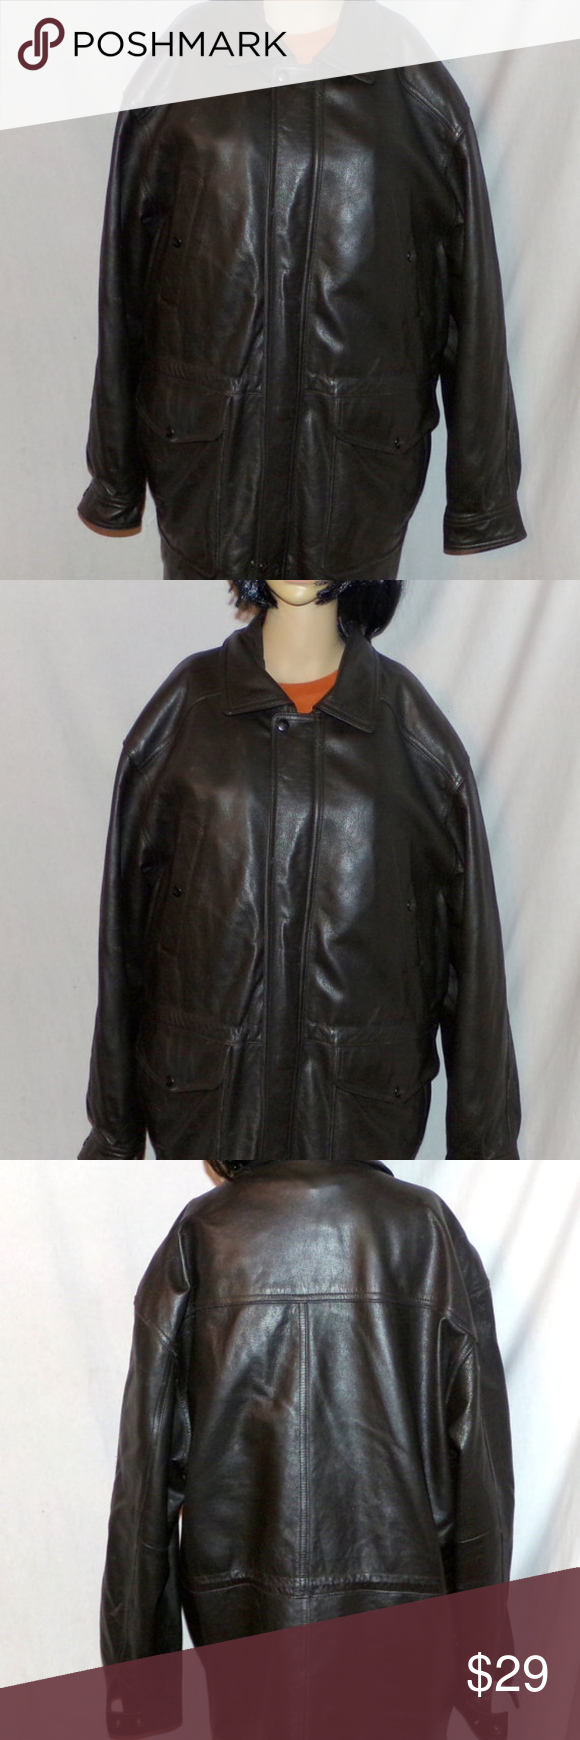 Reed Leather Jacket Coat Removal Liner Thinsulate Insulated Leather Coat Men S Thinsulate Insulated Winter Coat Heavy Winter Coat Leather Jacket Leather Coat [ 1740 x 580 Pixel ]